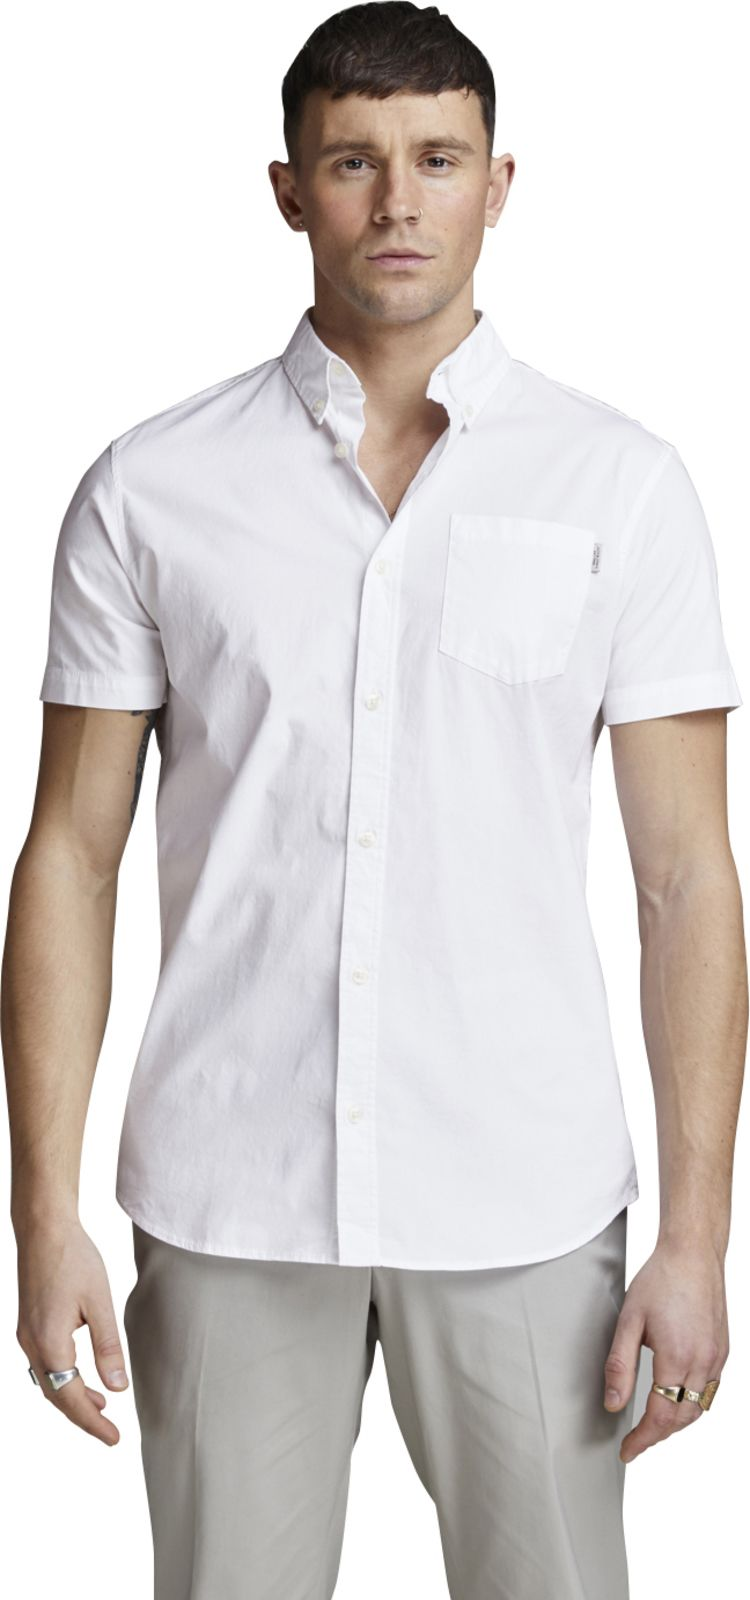 Jack & Jones Jones Short Sleeve Shirt White